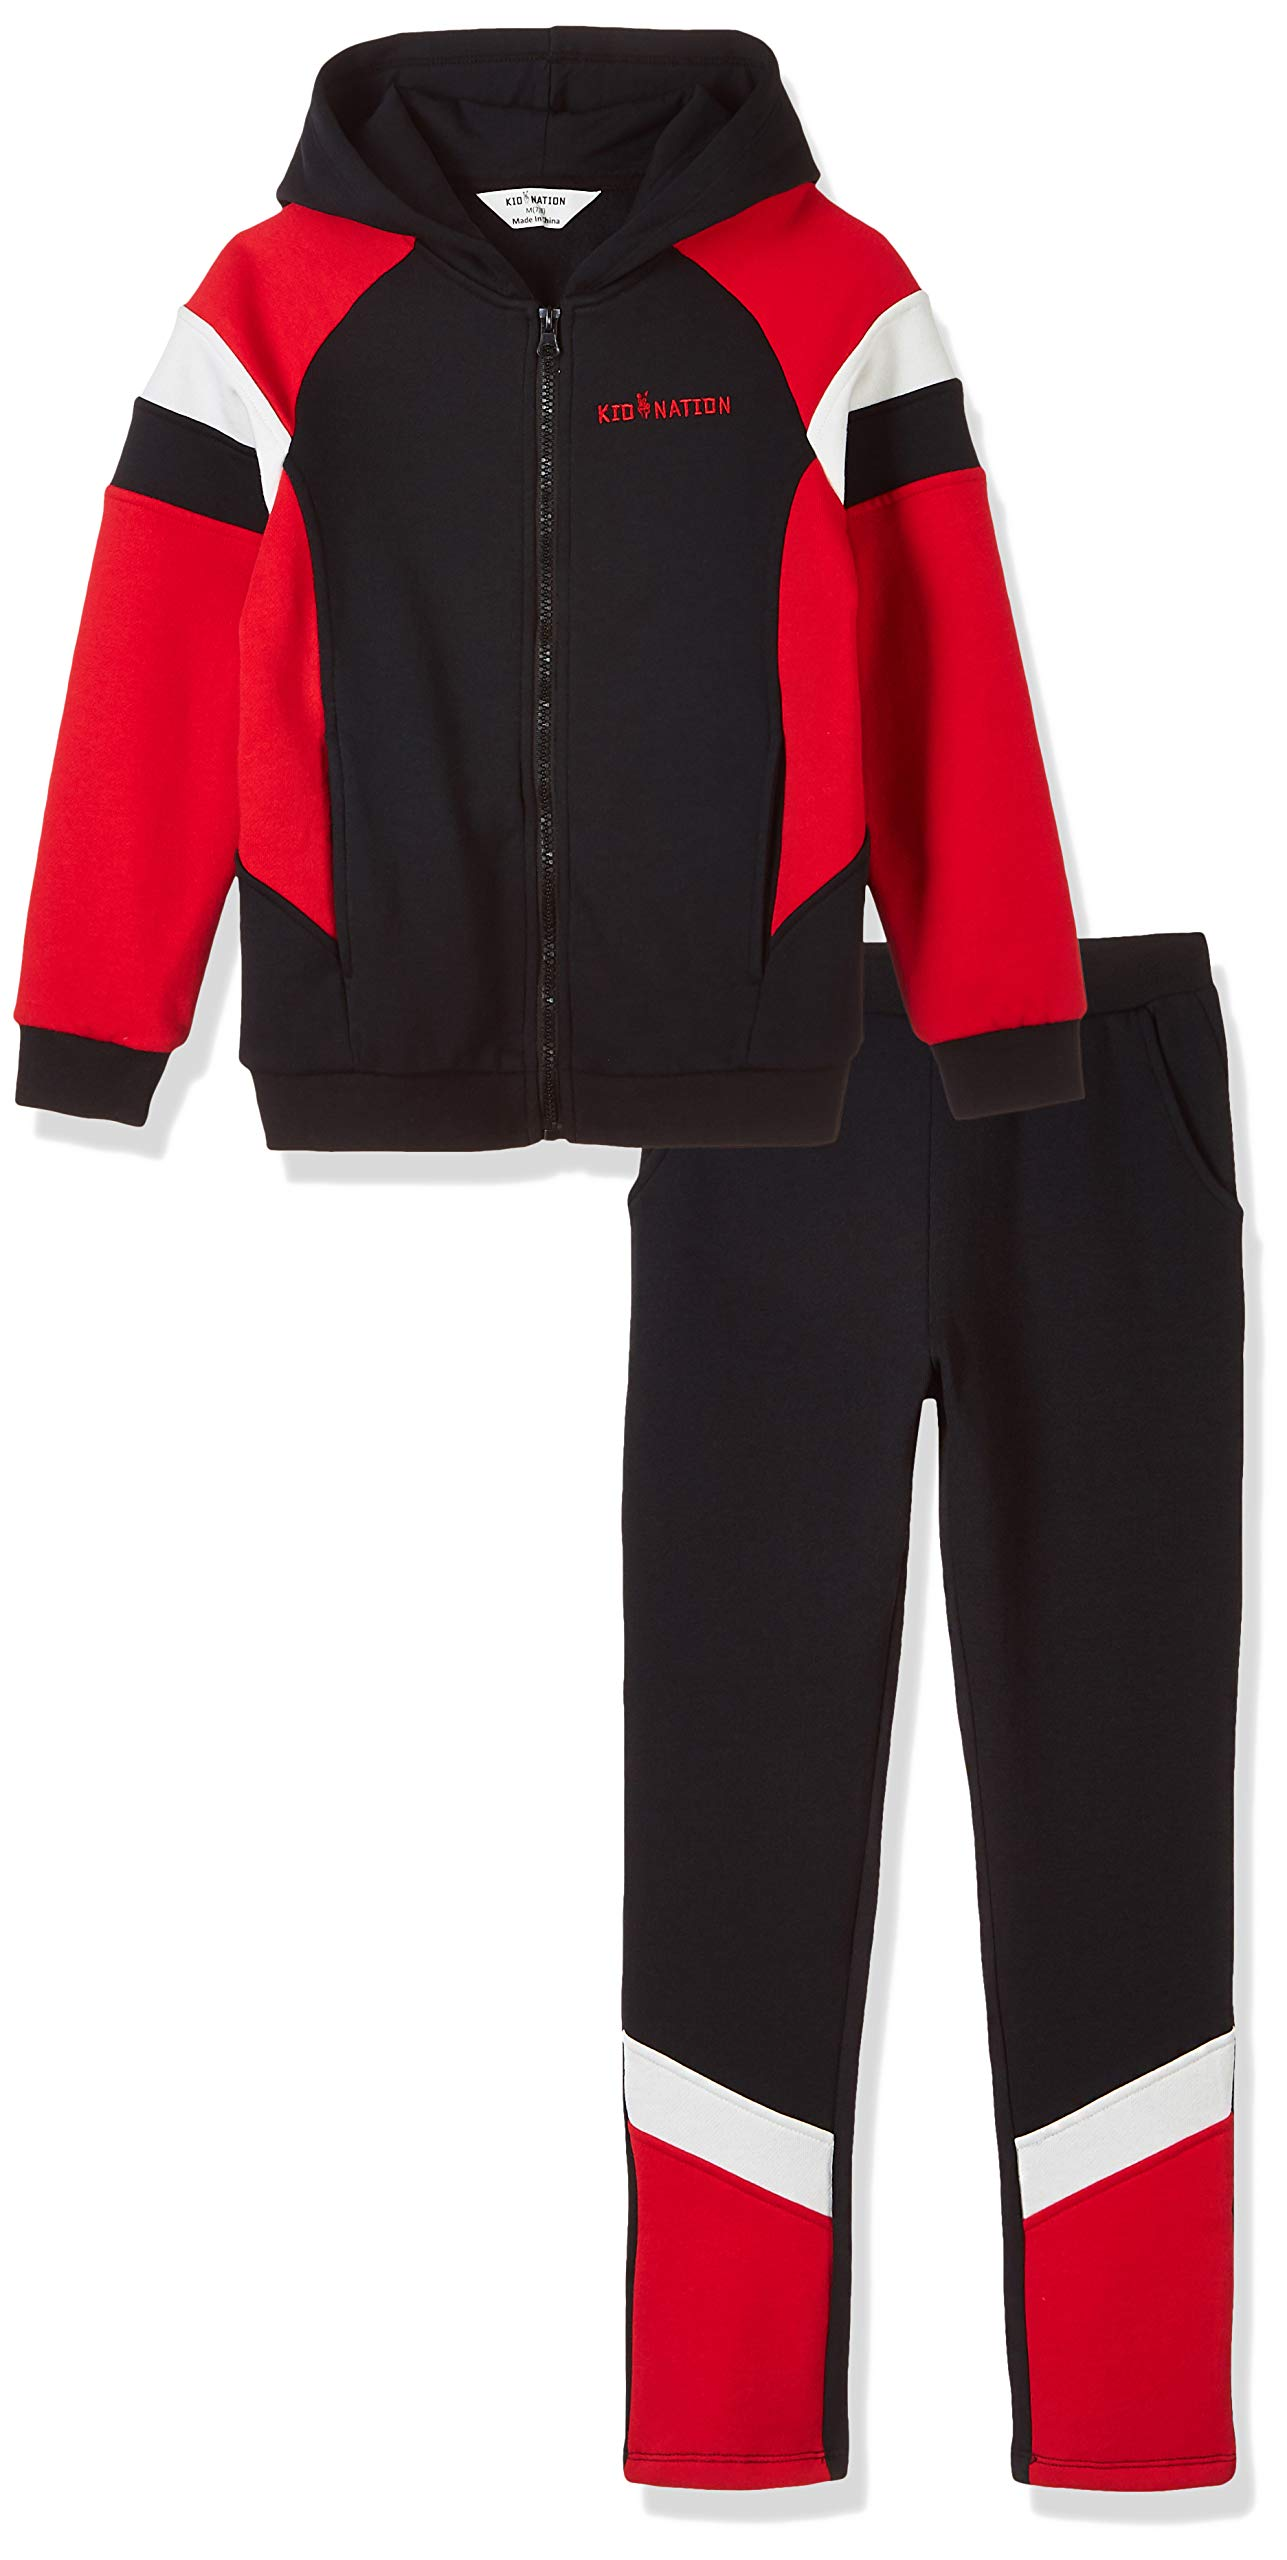 Kid Nation Kids' Sport Hooded Jacket Pants Set for Boys and Girls Black/Red/White S by Kid Nation